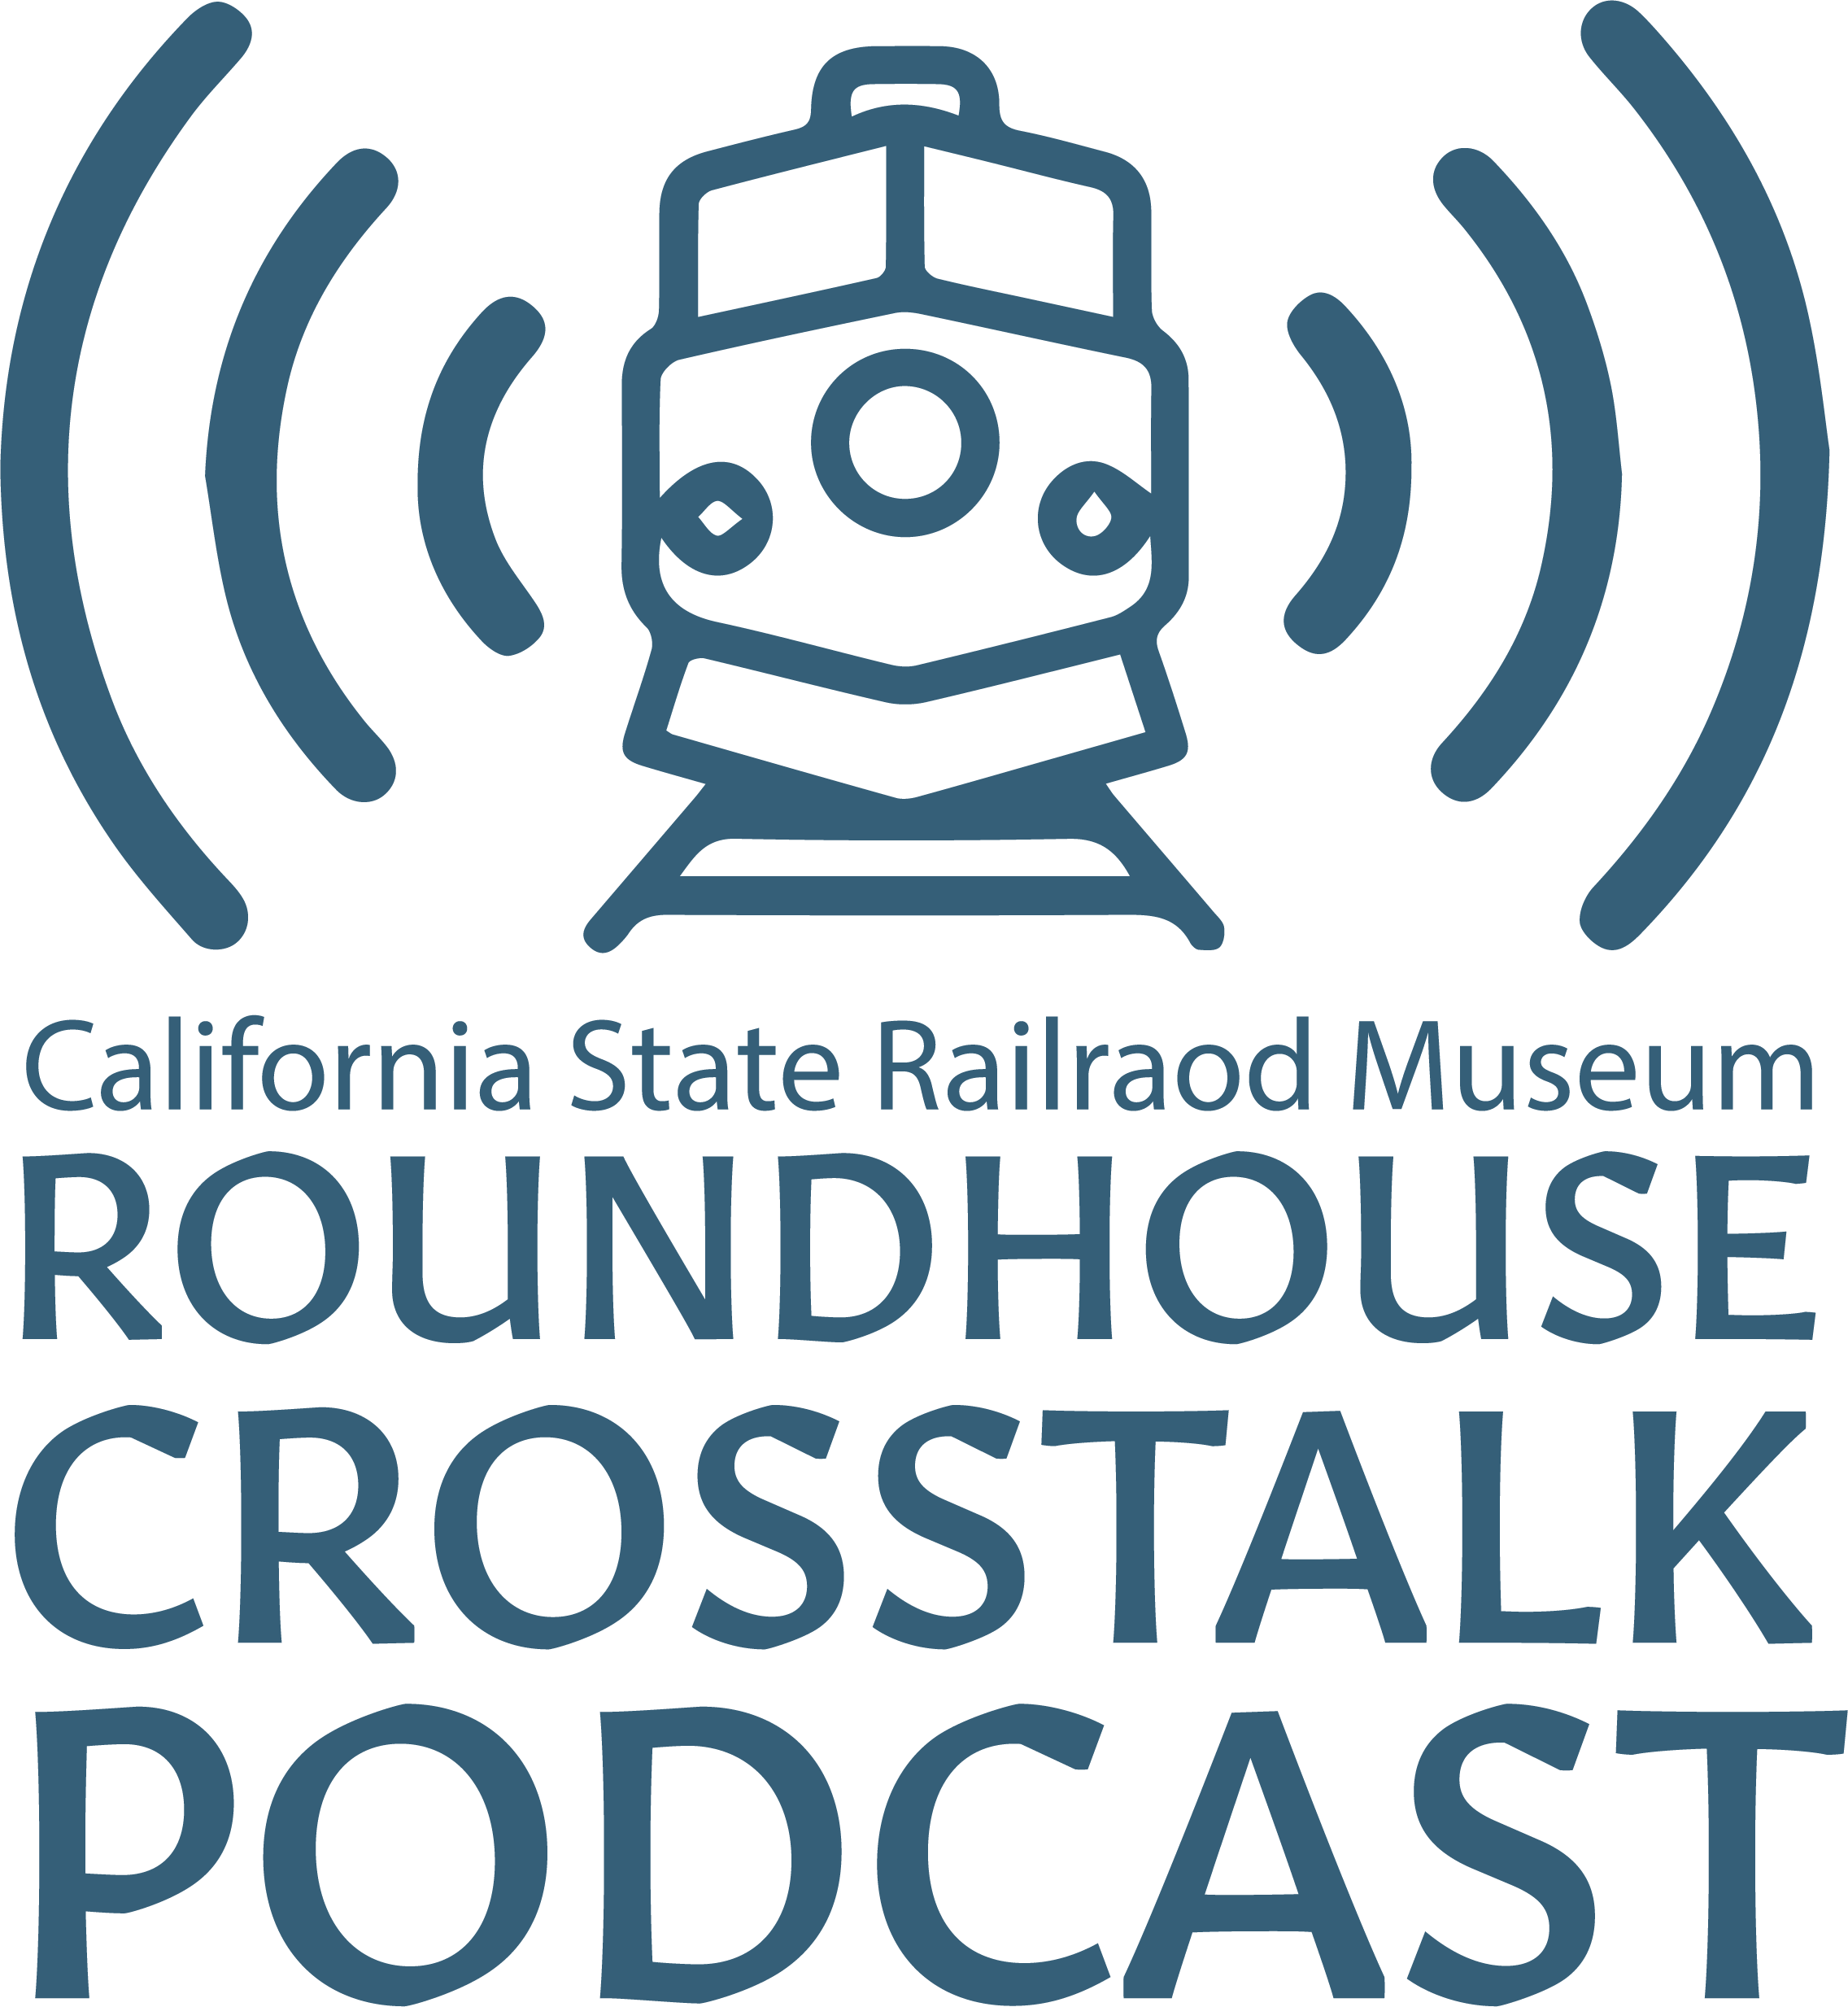 Roundhouse Crosstalk Podcast: YOUR Story Here